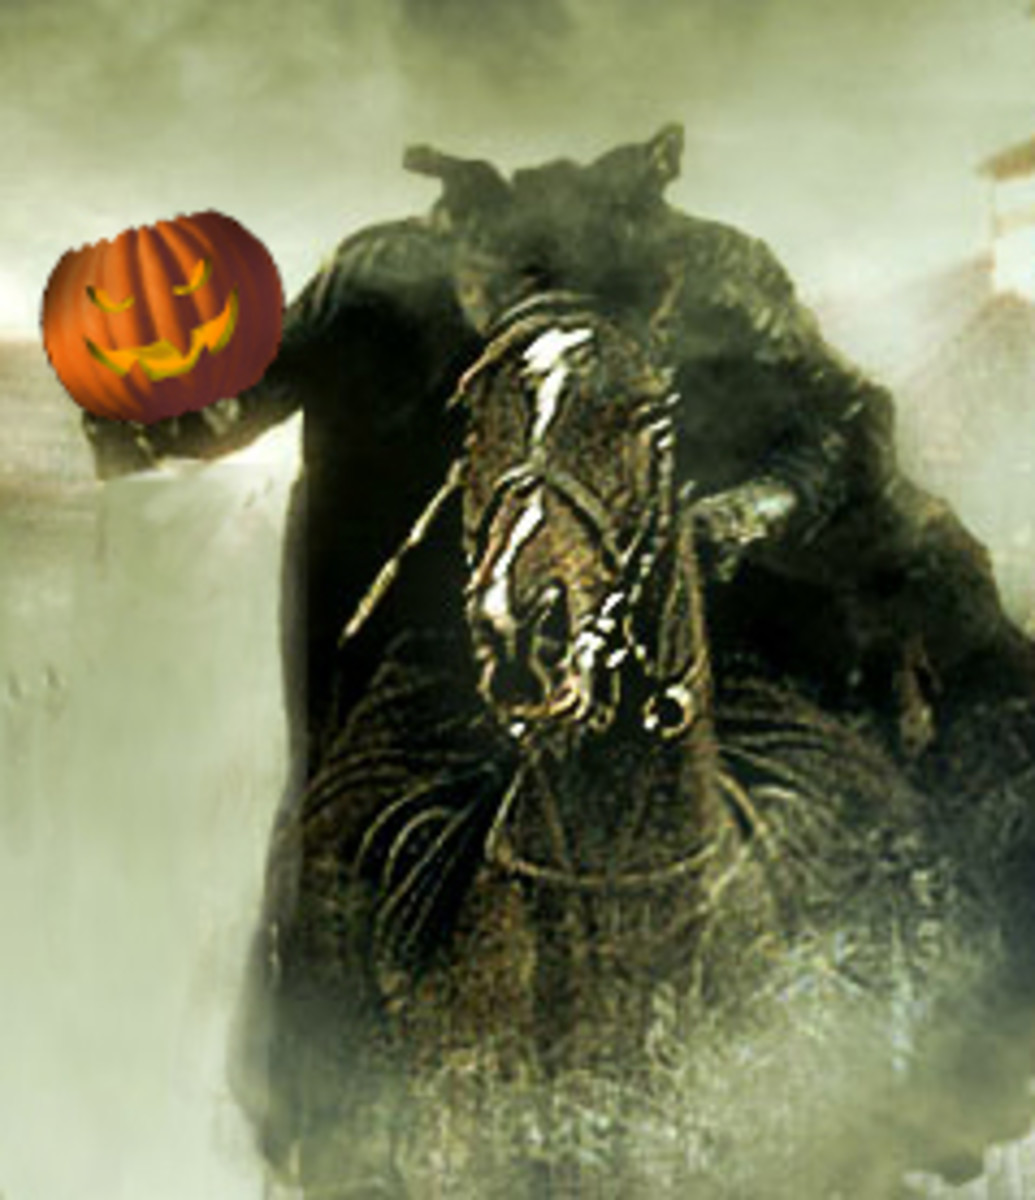 The Headless Horseman thundered towards us - Image by RedElf, photo from 123nonstop.com